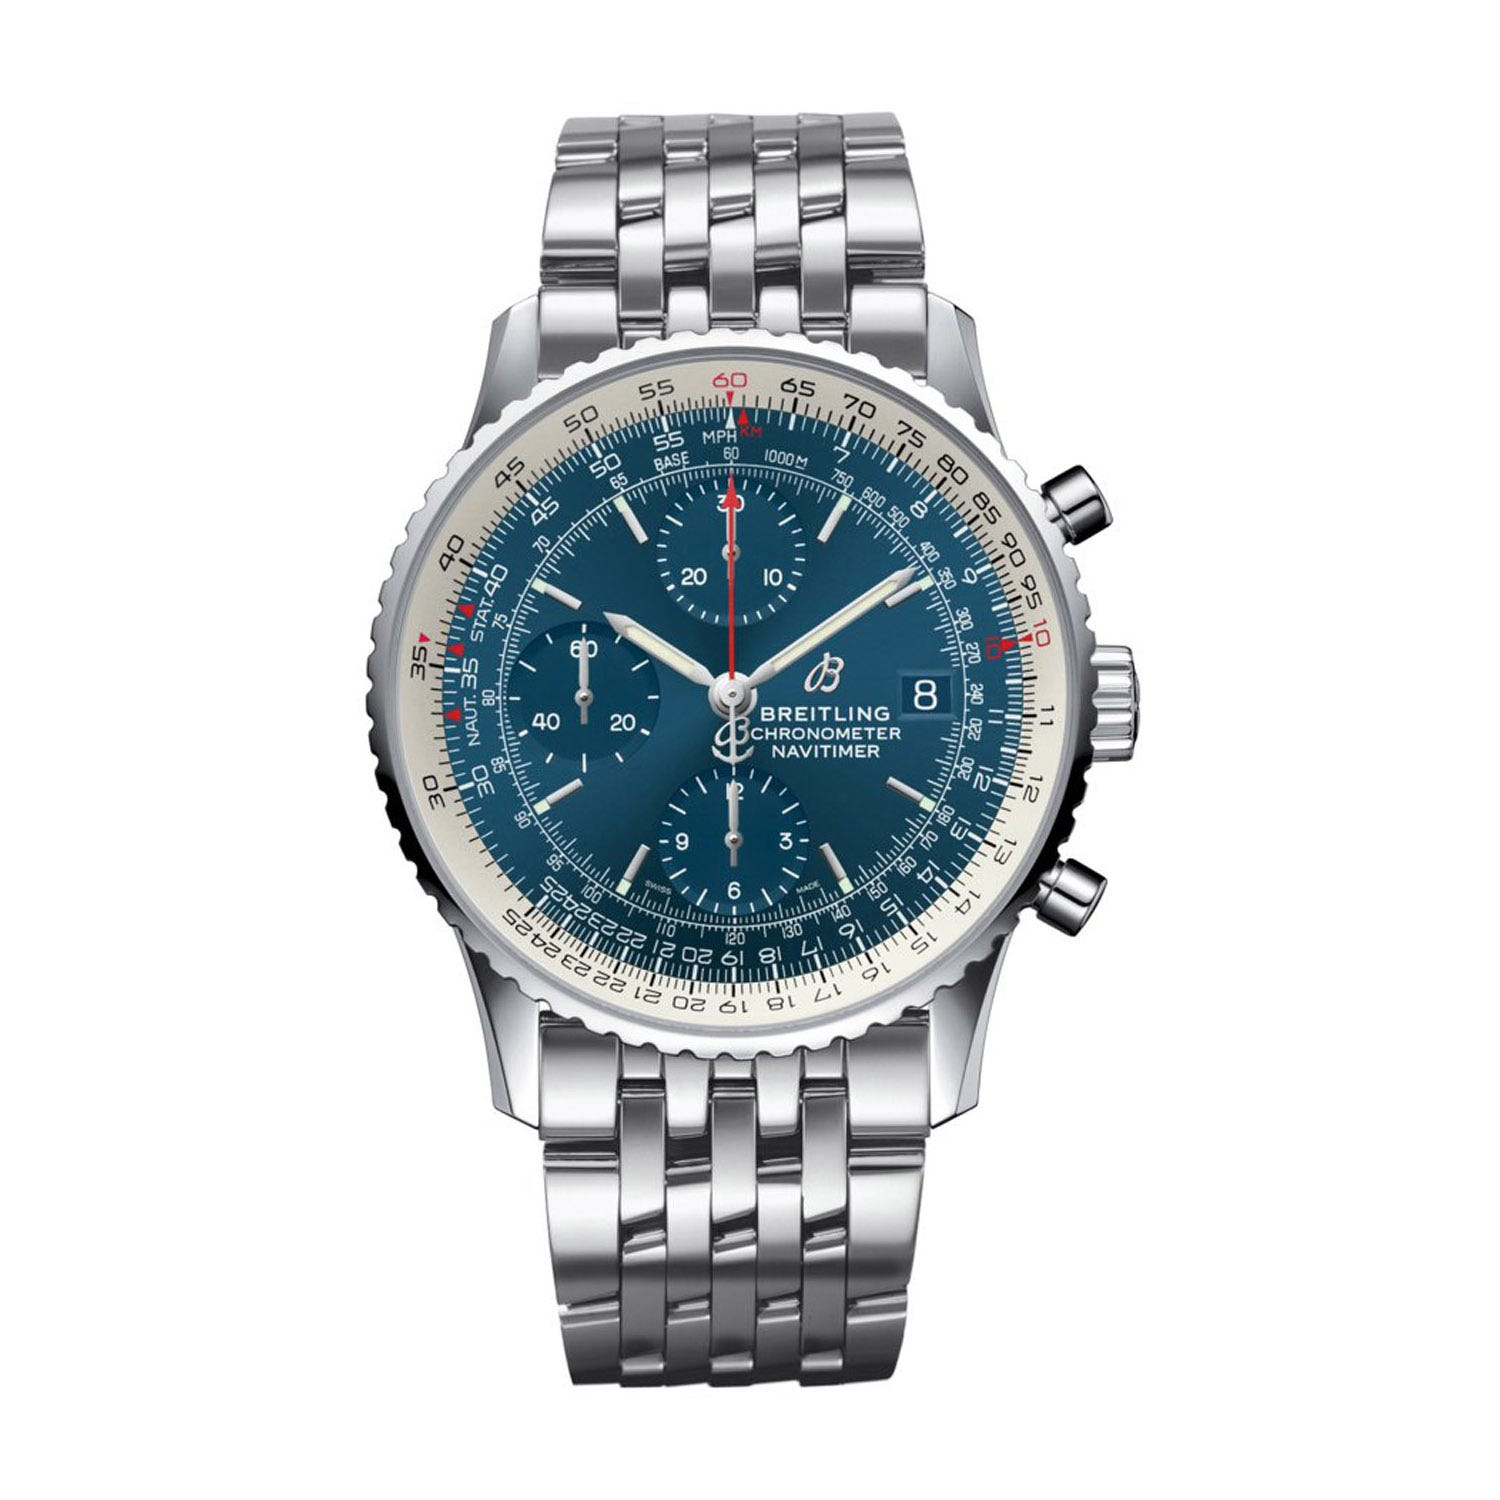 Breitling Navitimer 1 Blue Dial Steel Bracelet Men's Watch